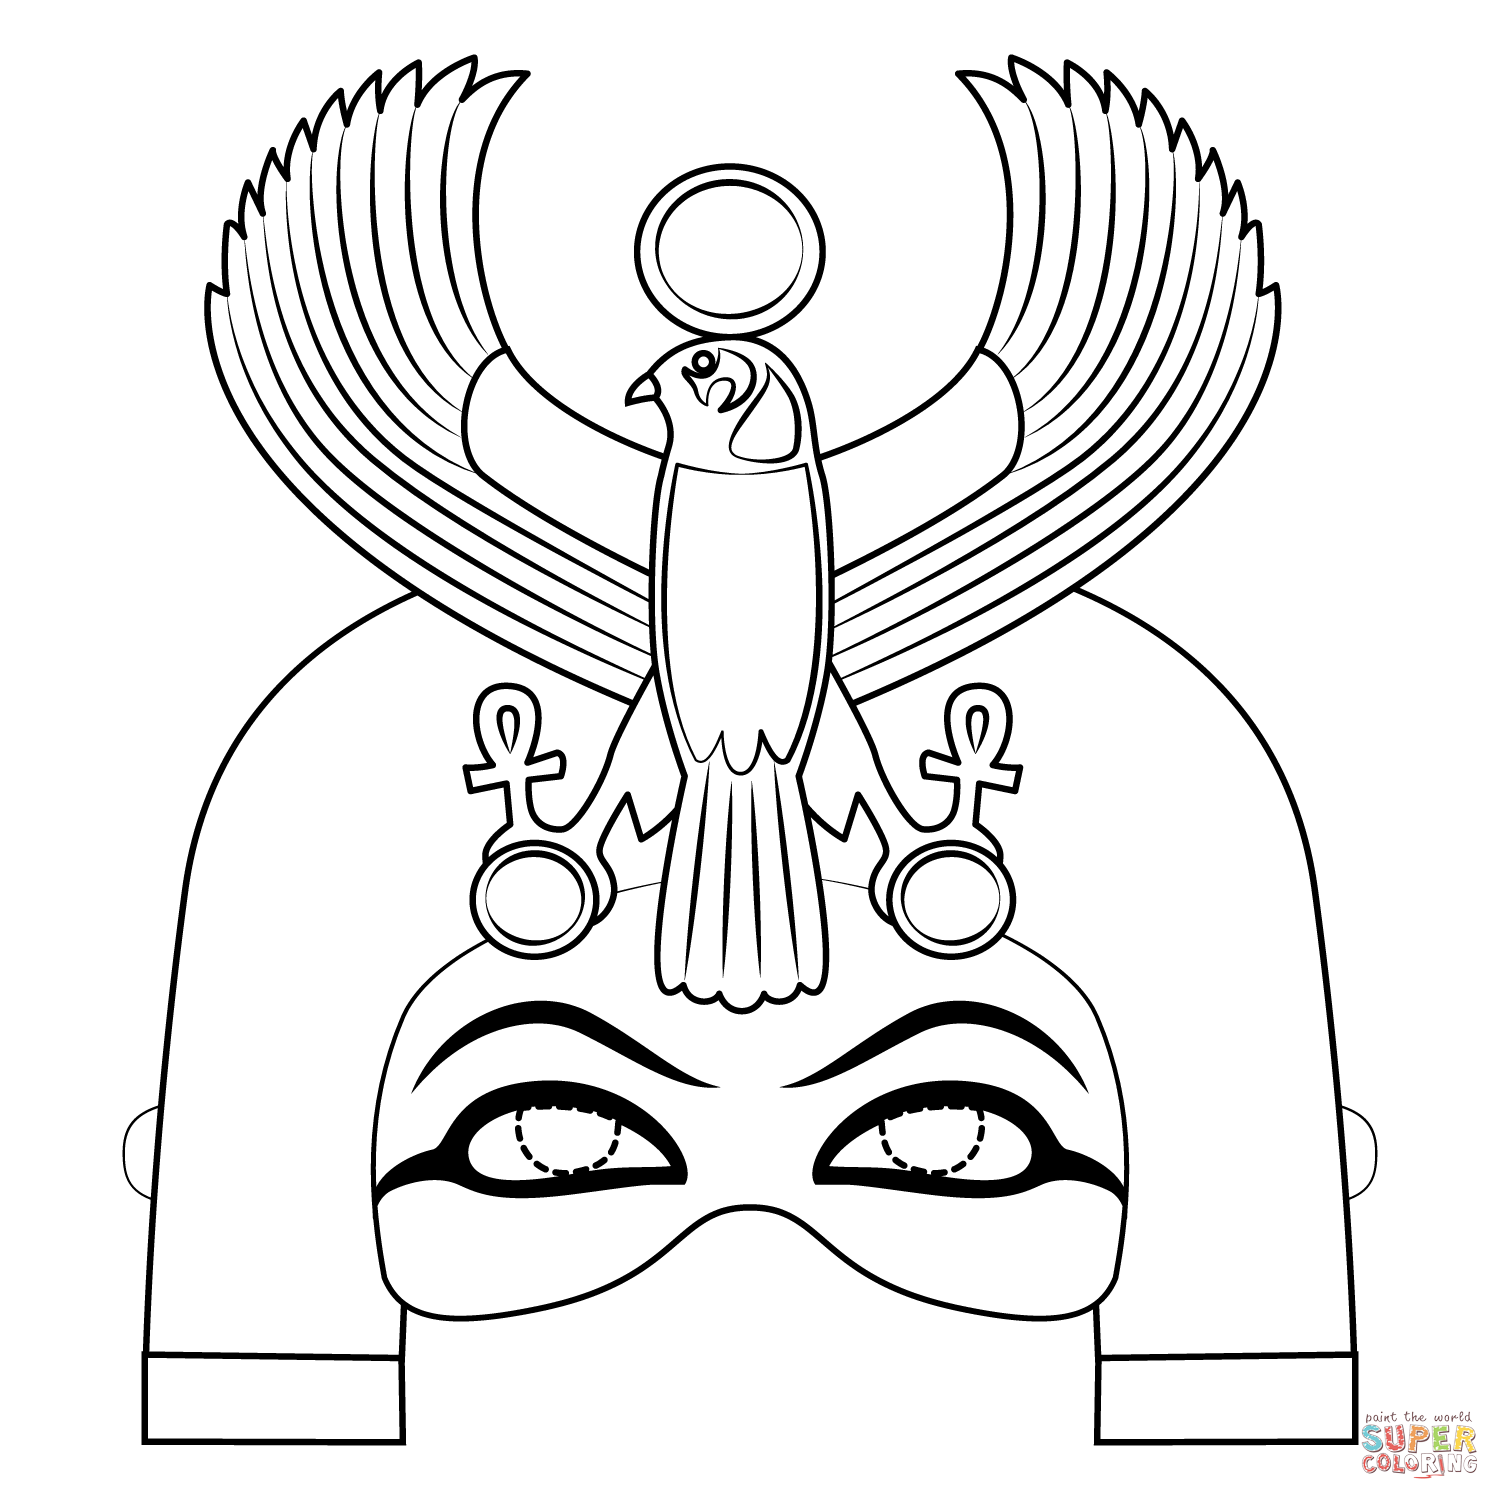 Egyptian Mask With Horus Falcon Coloring Page Free Printable Coloring Pages Egyptian Mask Egyptian Crafts Coloring Pages